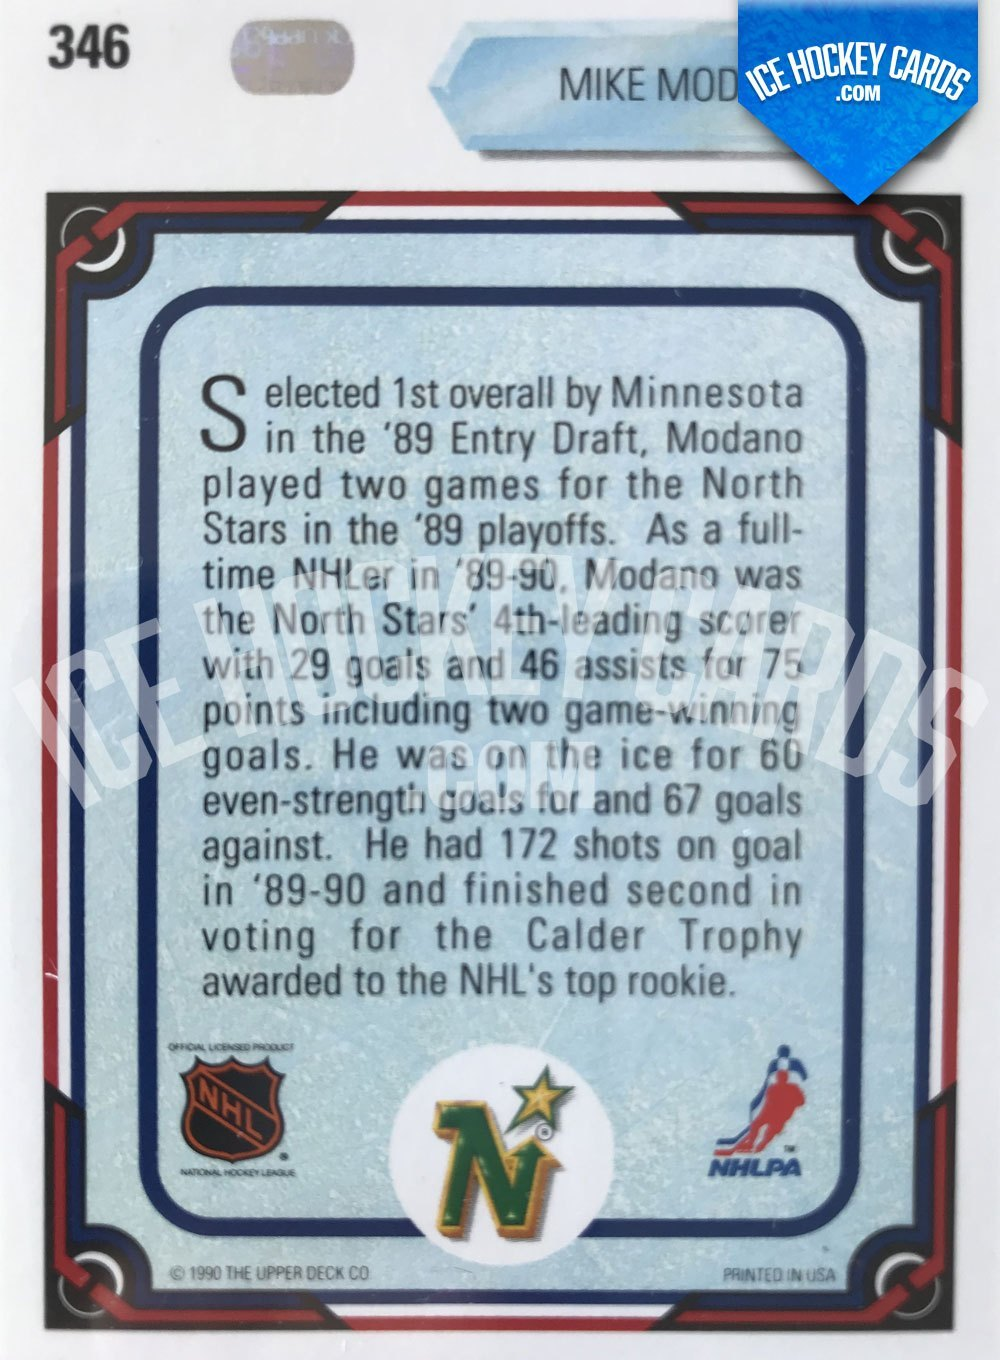 Upper Deck - 90-91 - Mike Modano All Rookie Team Card back